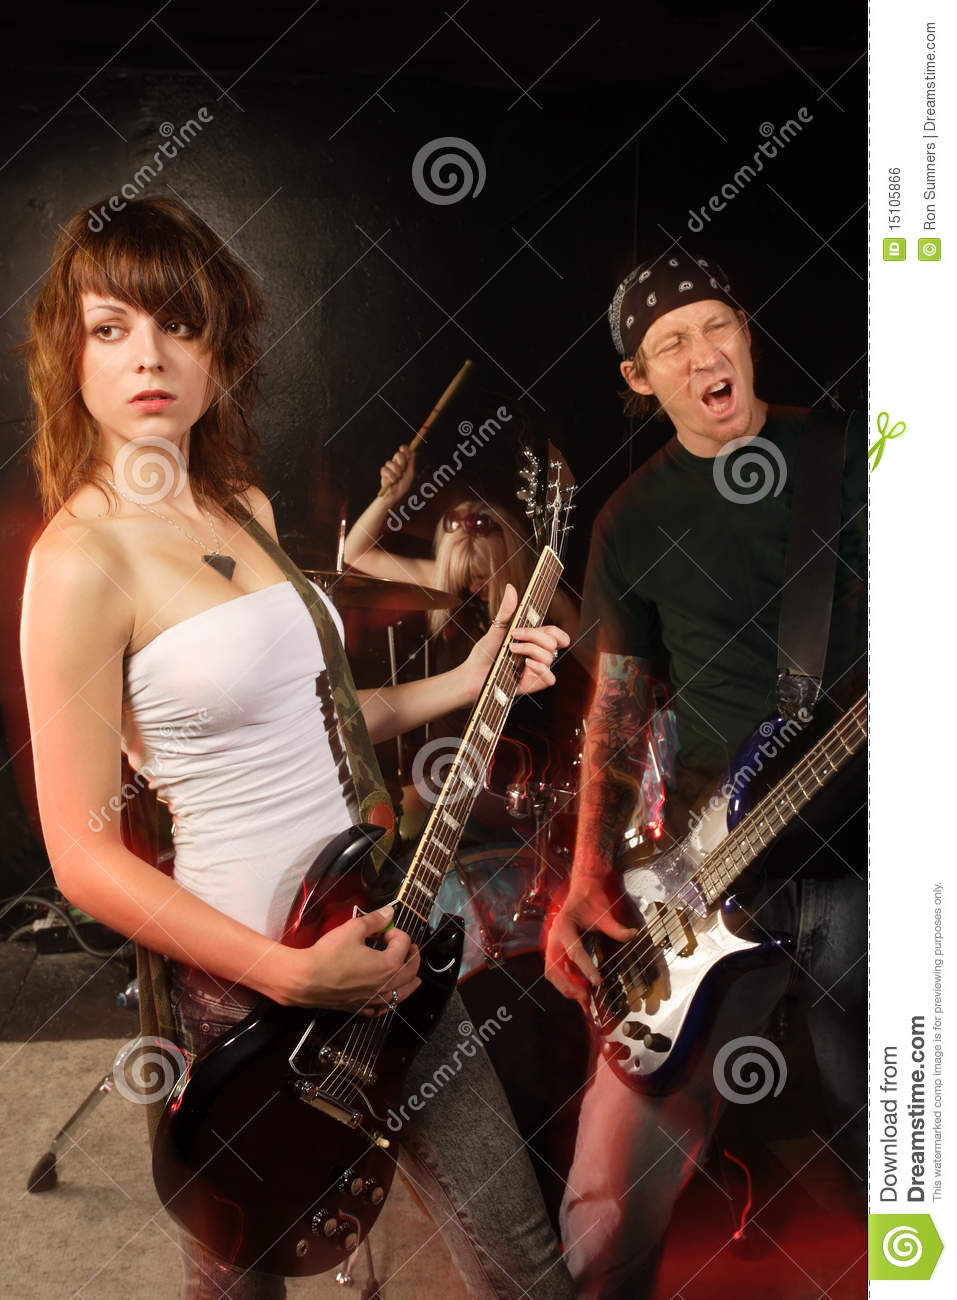 rock band on stage royalty free stock image image 15105866